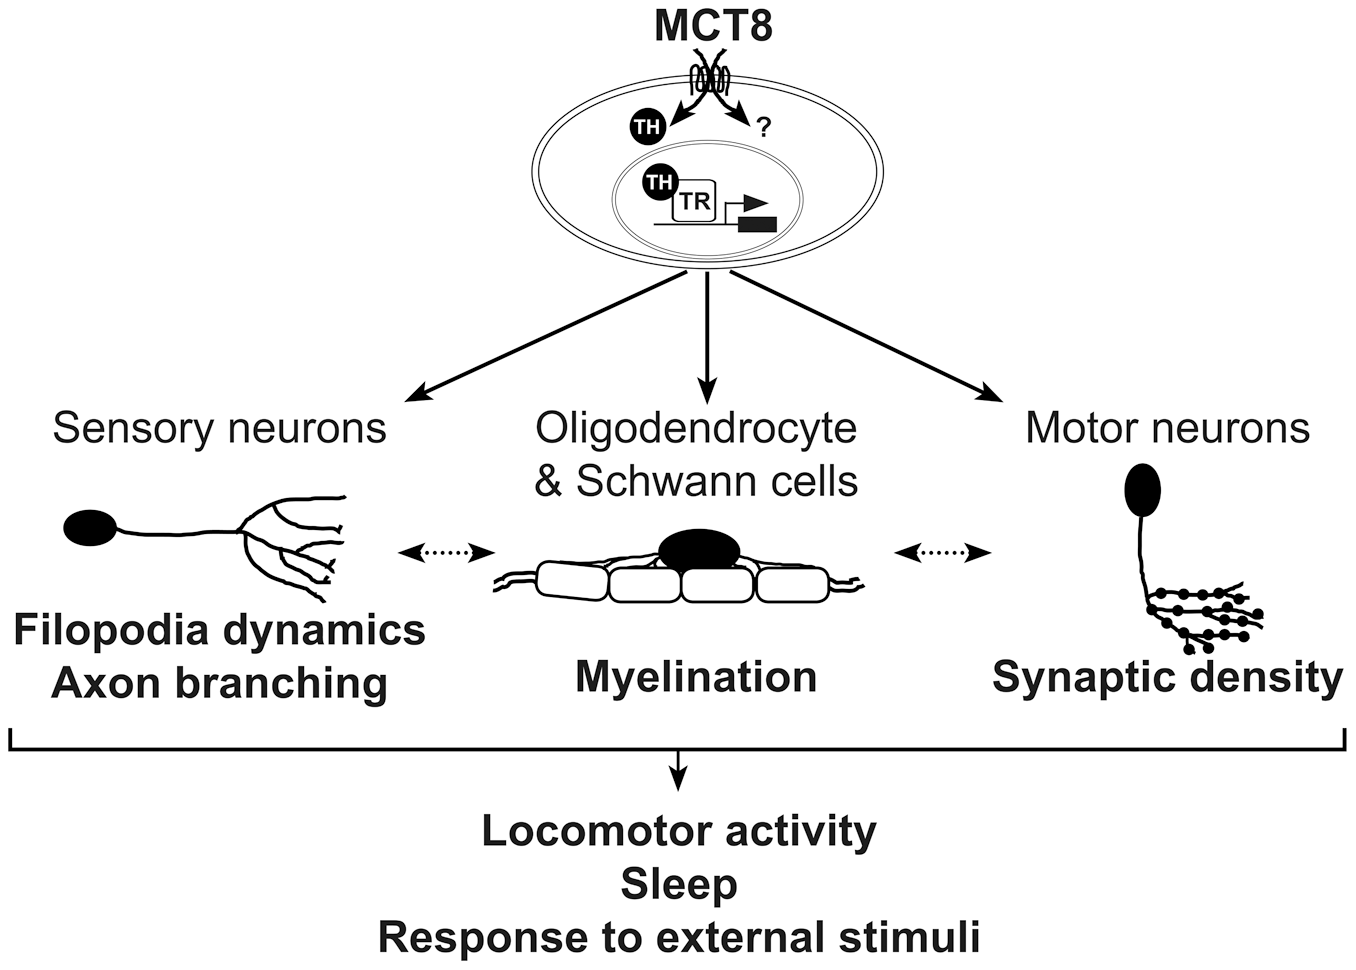 A proposed model for the mechanism underlying MCT8 deficiency.